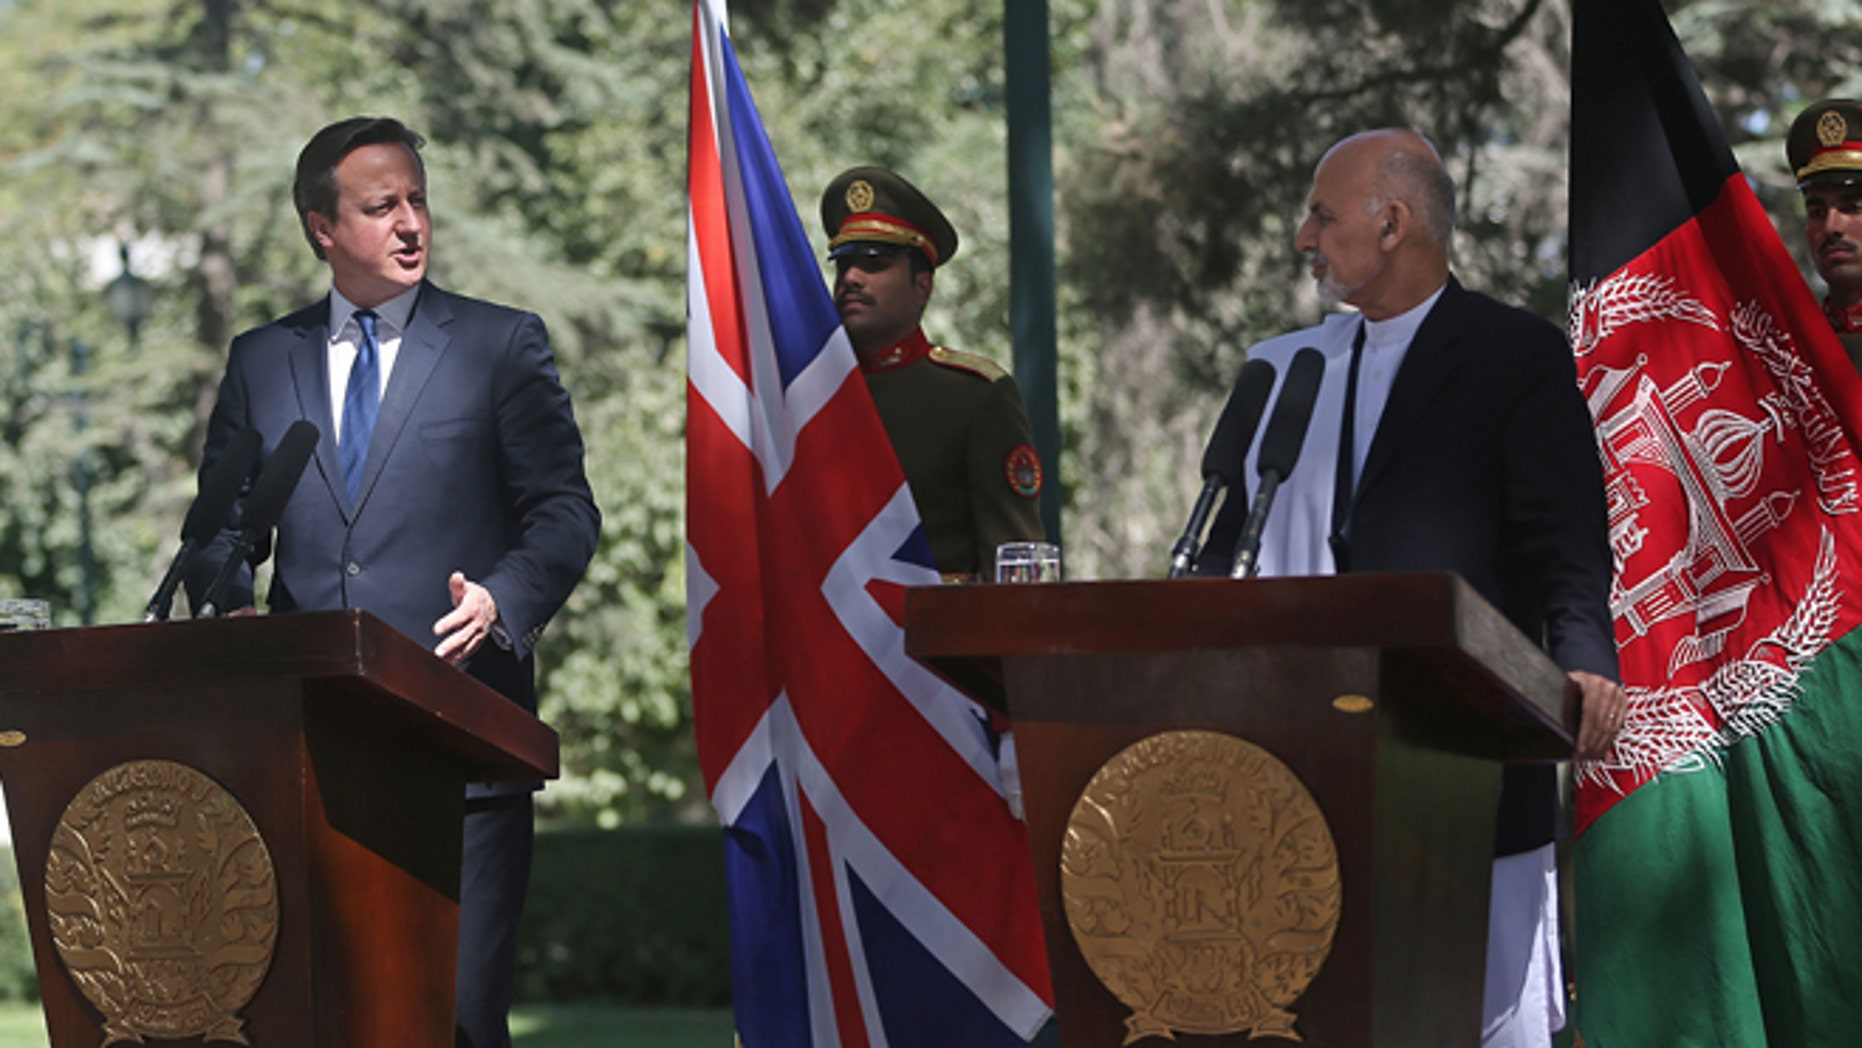 Oct. 3, 2014: Afghanistan's president Ashraf Ghani Ahmadzai, second right, listens as Britain's Prime Minister David Cameron talks during a news conference at the presidential palace in Kabul, Afghanistan. (AP)